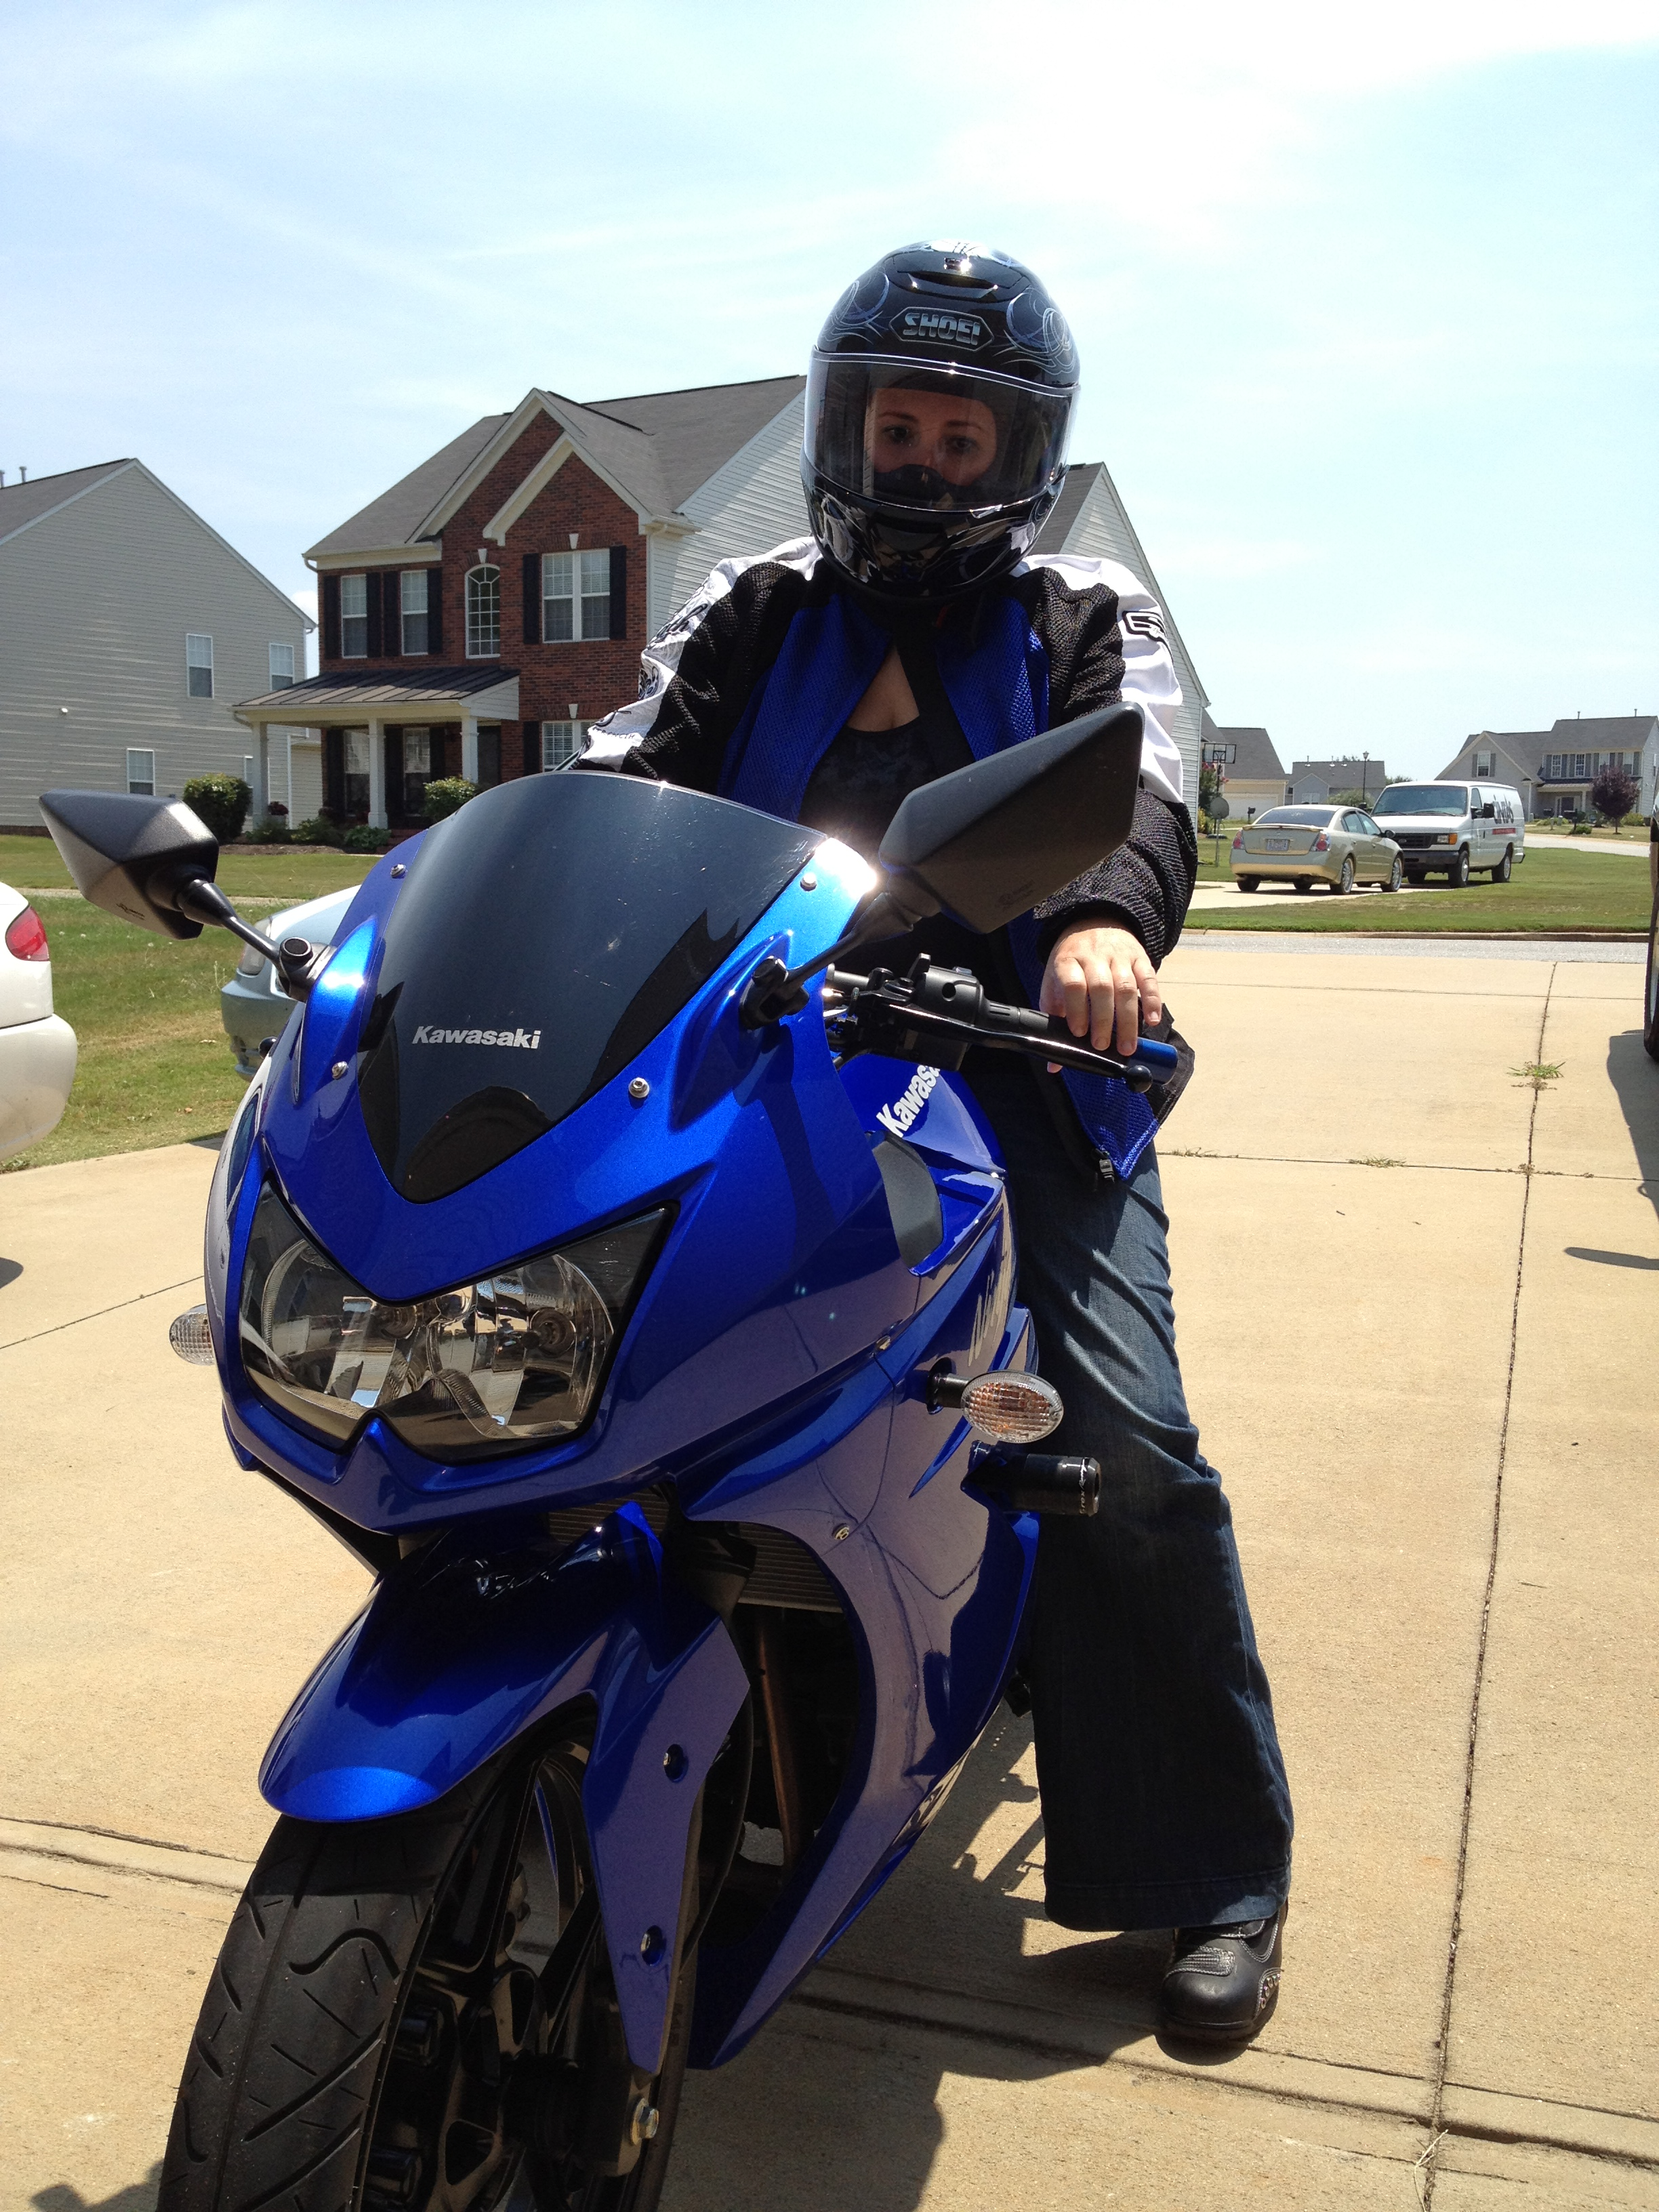 My wife, geared up to learn how to ride.